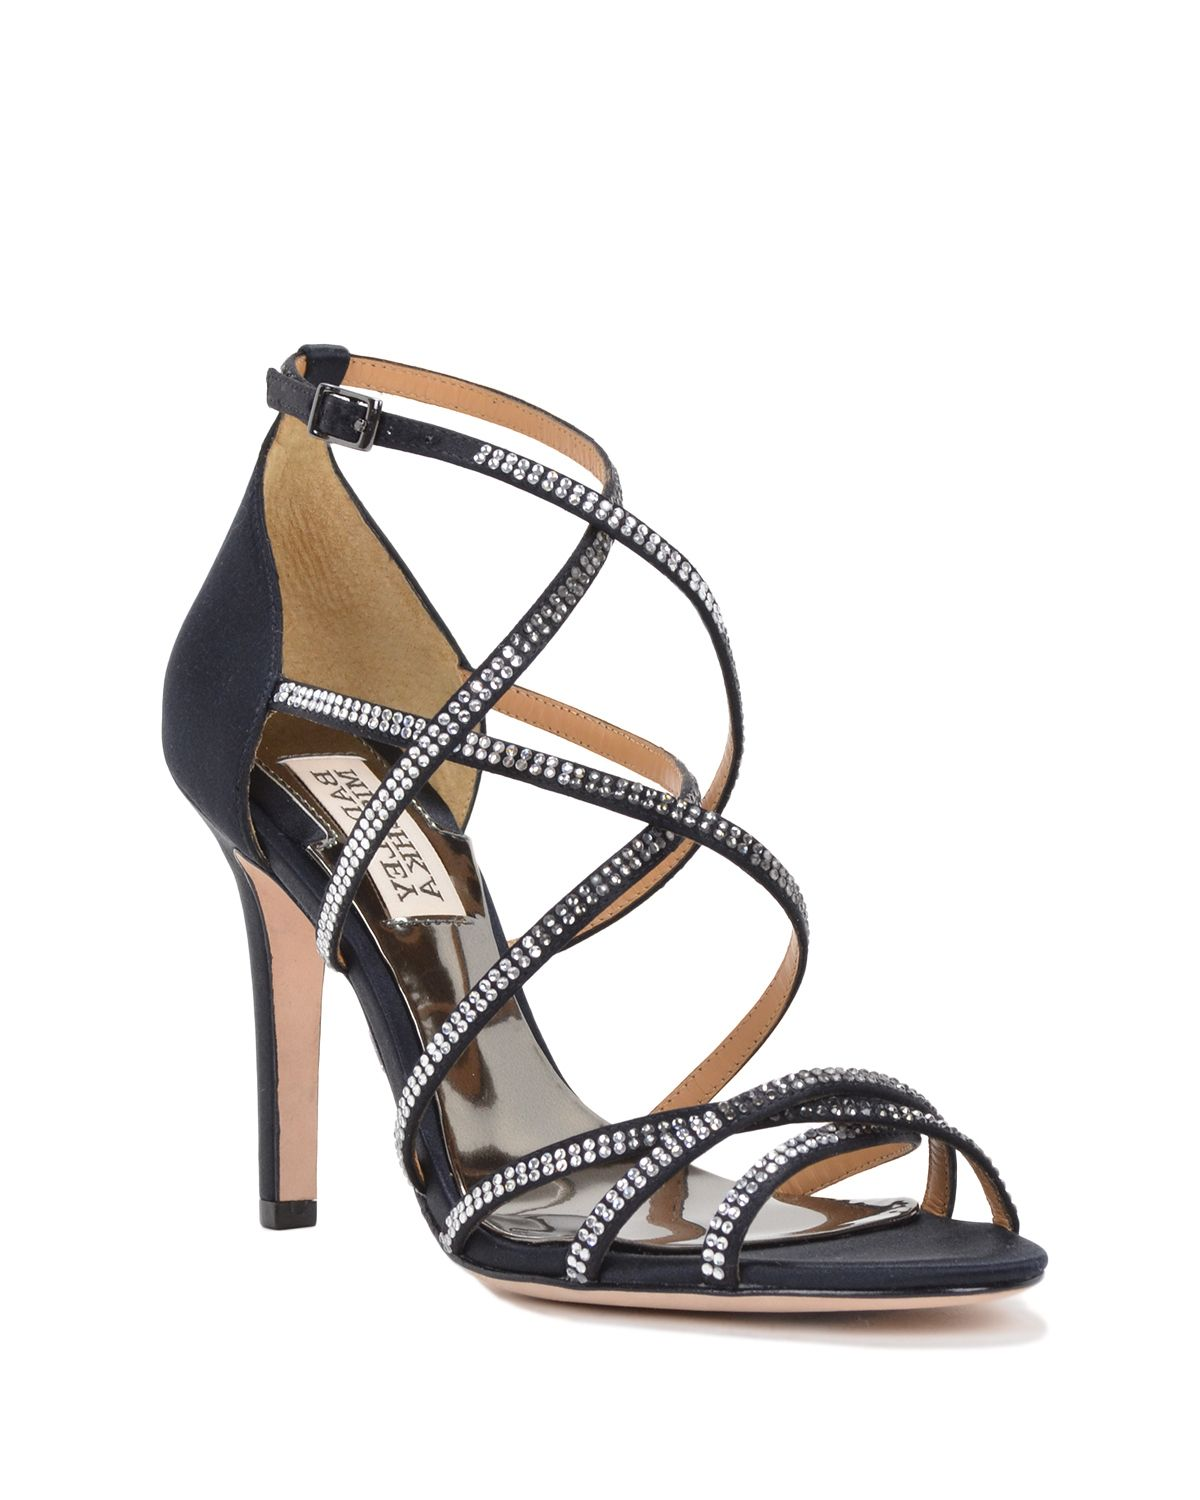 9735a3e3fe4 Badgley Mischka Meghan Strappy Evening Shoe in Black